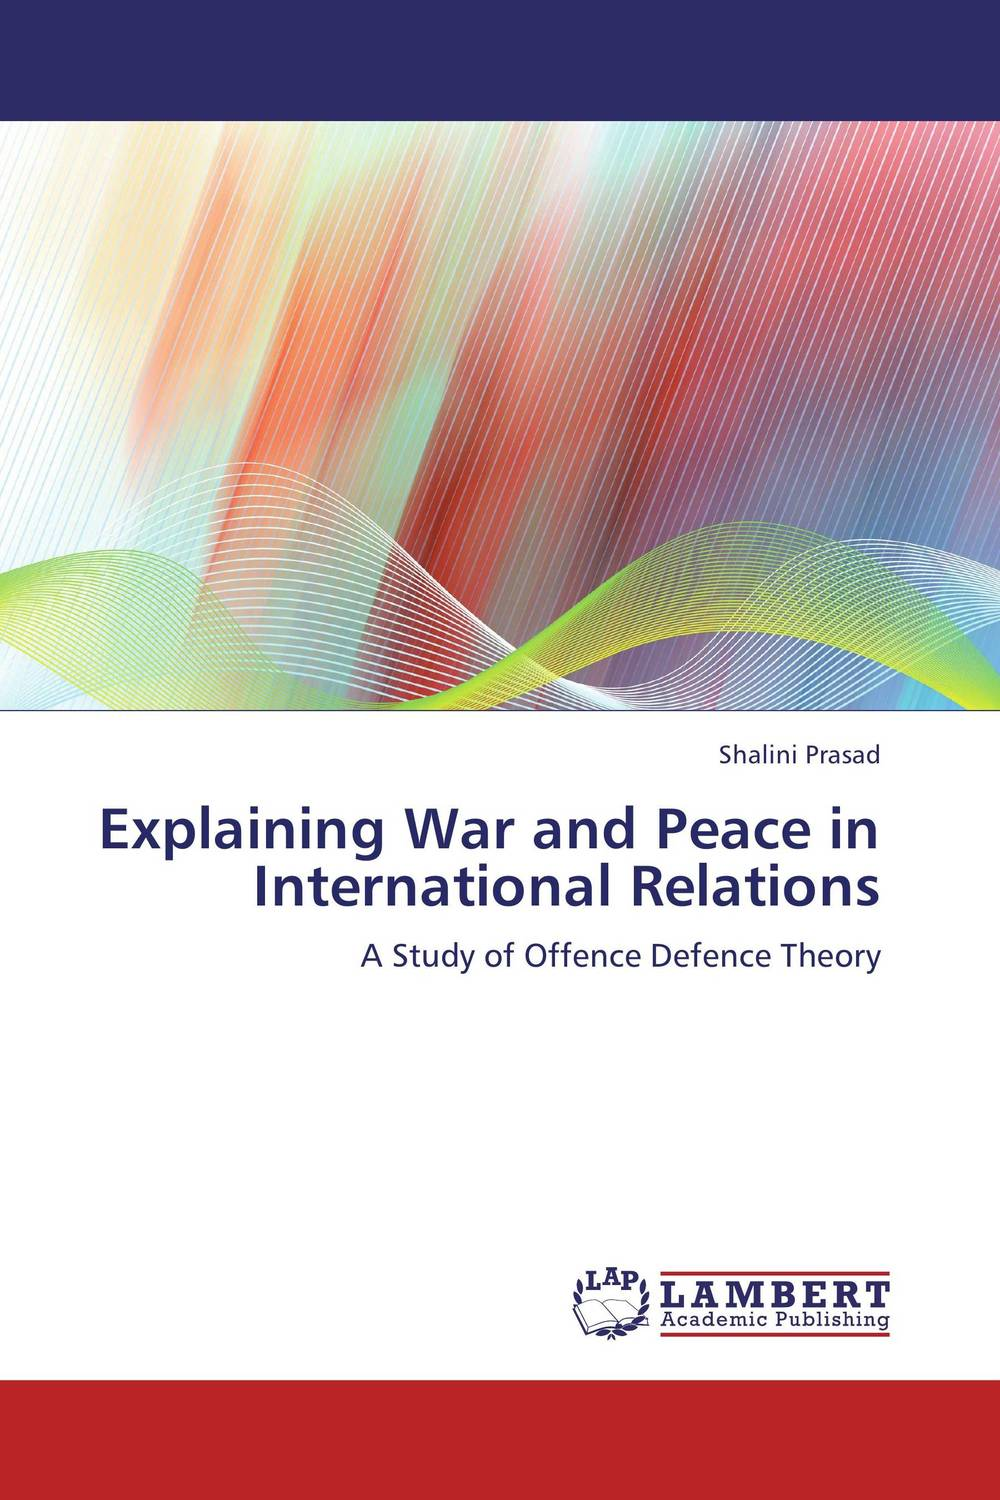 Explaining War and Peace in International Relations